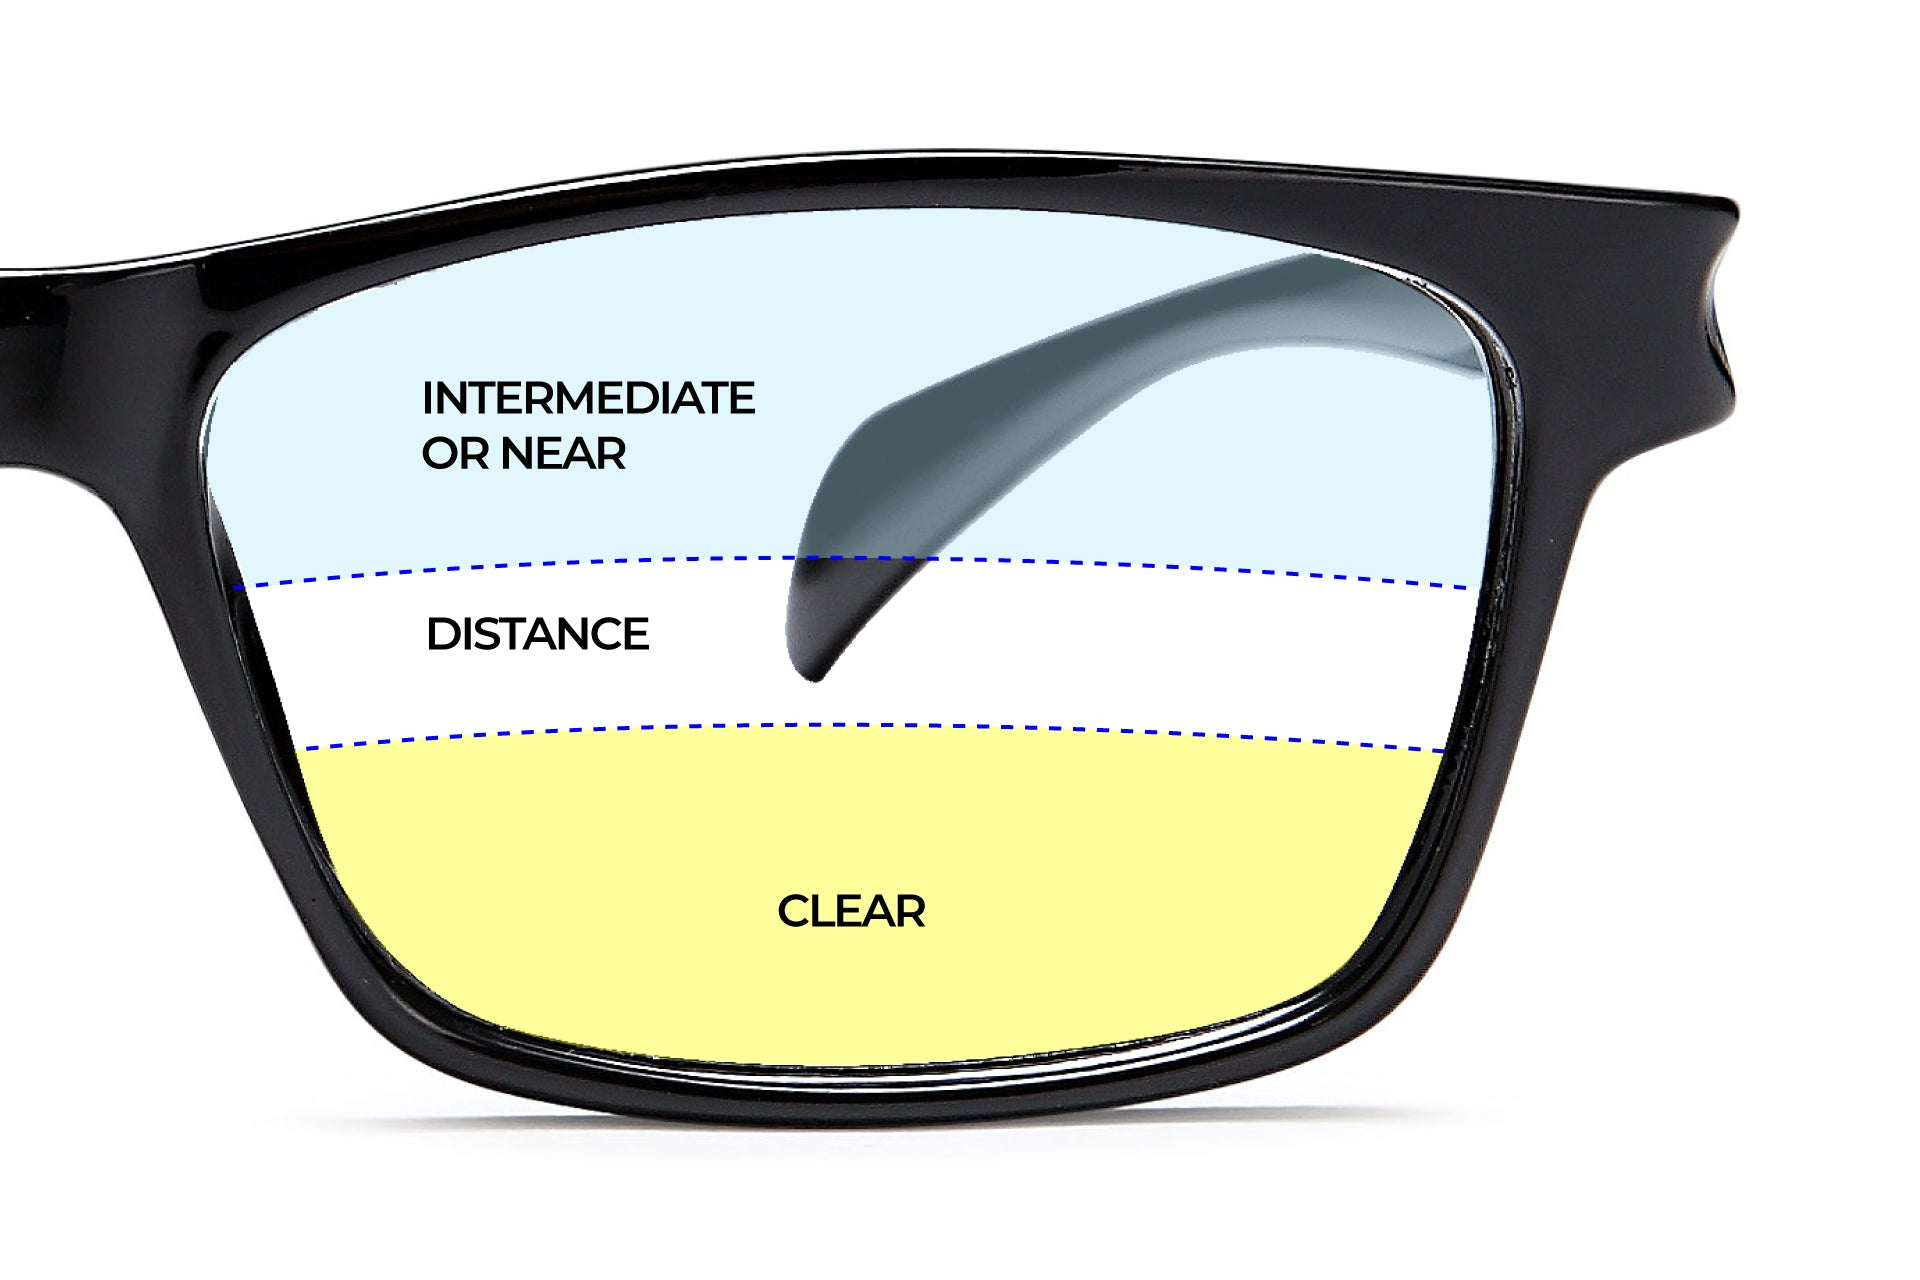 trifocal lenses showing the range of vision